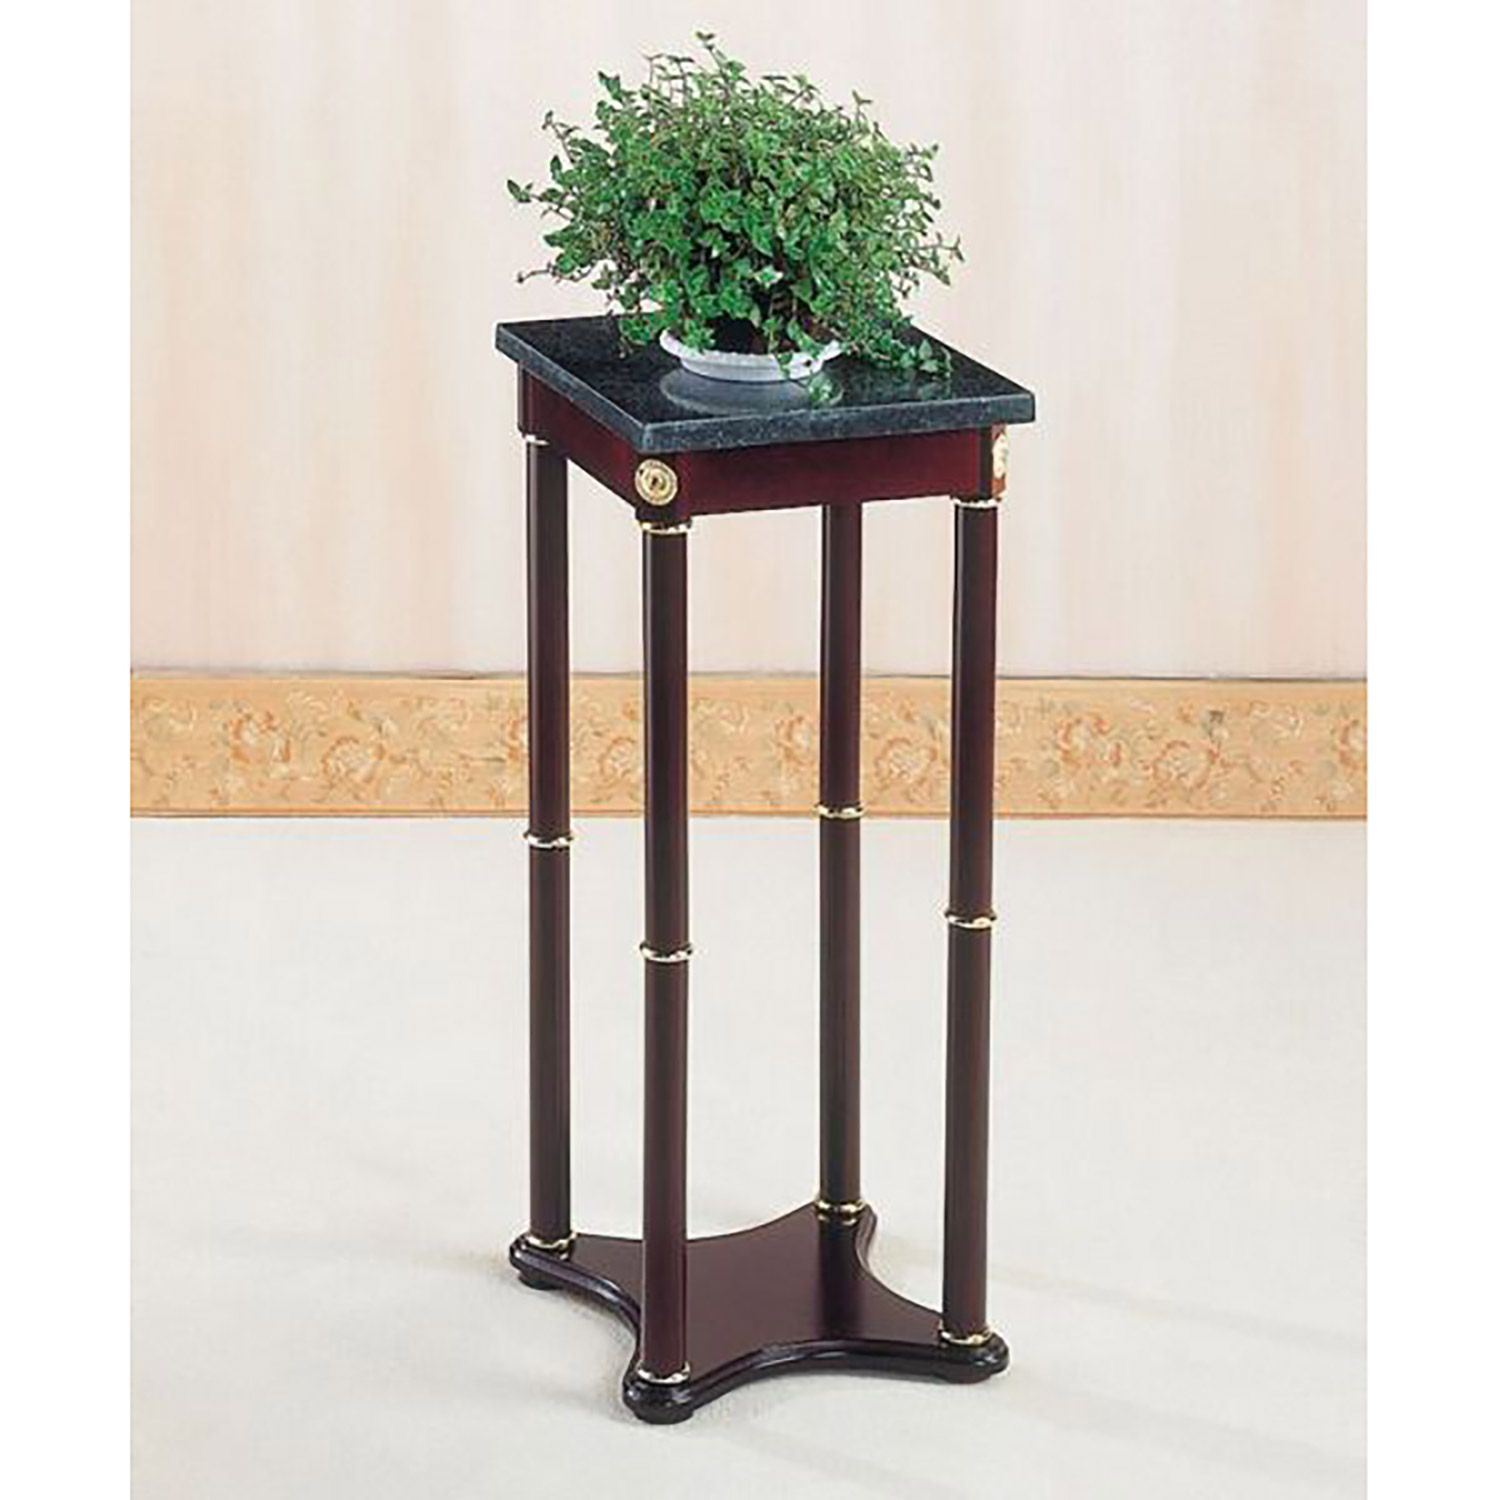 merlot square accent table afw ture farm trestle dining oval garden wrought iron mainstays coffee barley twist side outdoor umbrella brass with glass top timber furniture brisbane